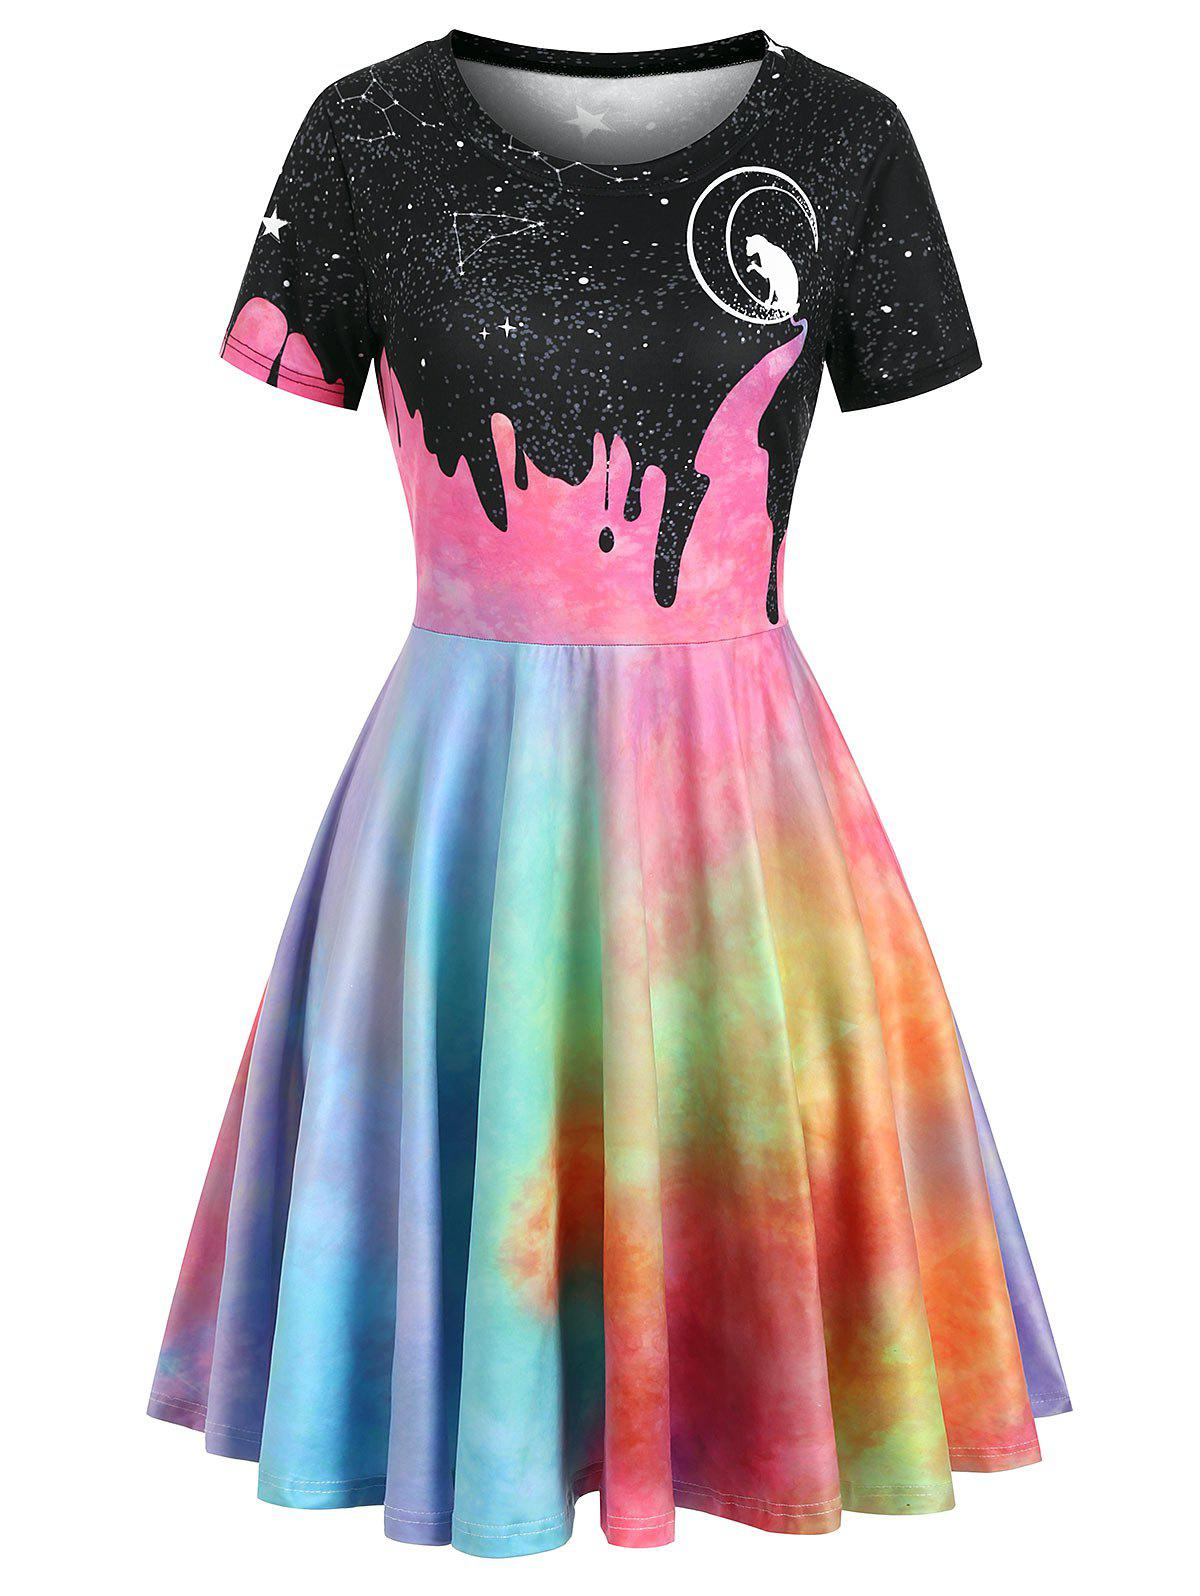 Cat Moon Galaxy Print Short Sleeve Dress - multicolor B L